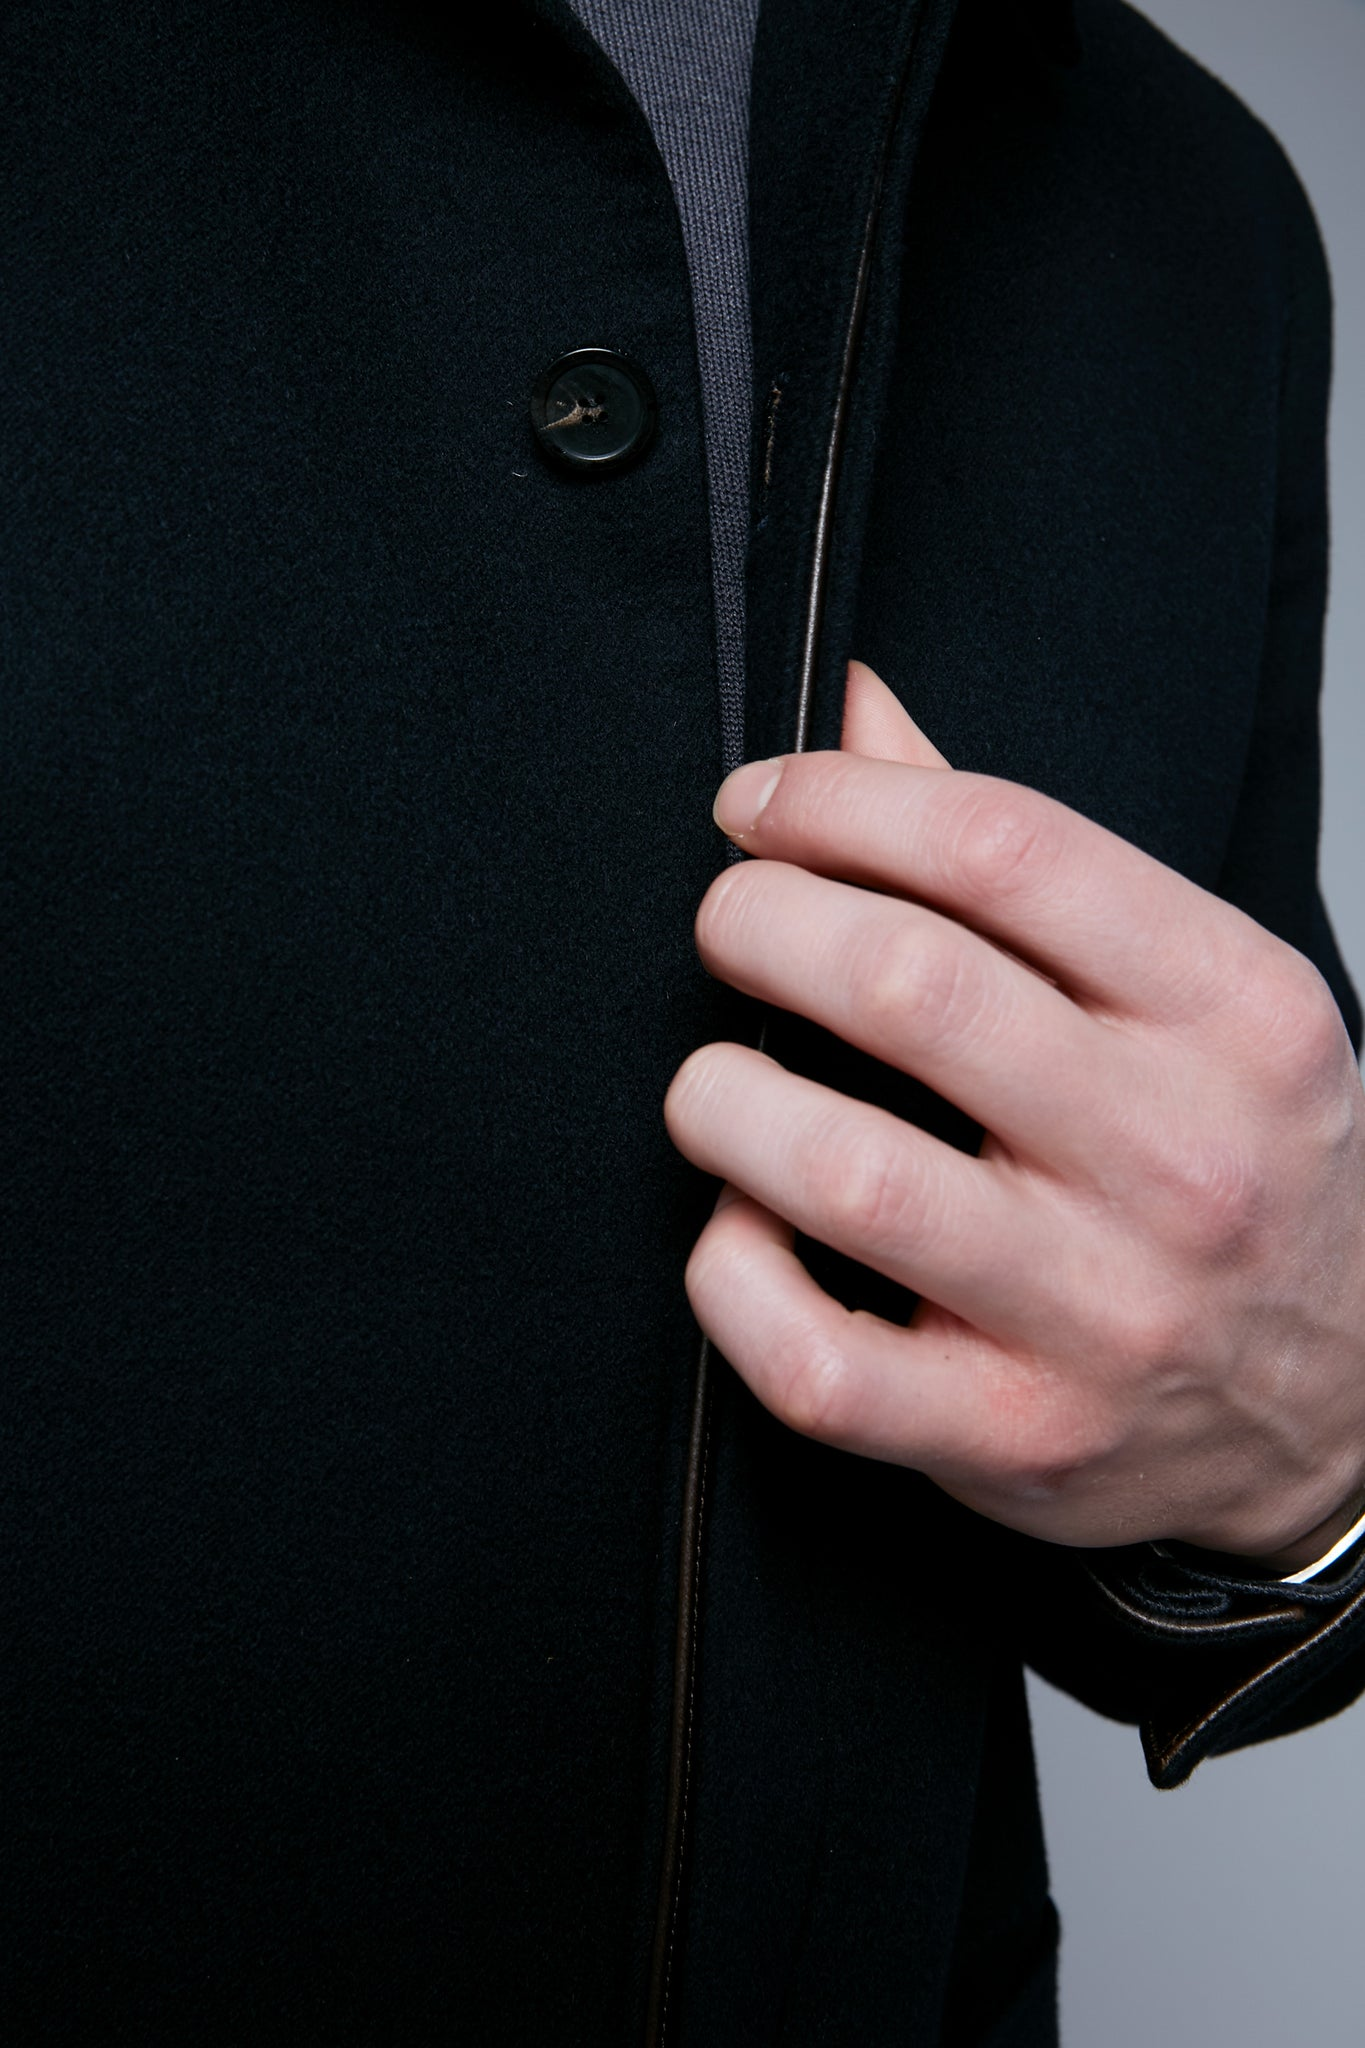 Detail View: Model Hans Weiner wearing Téchin Jacket